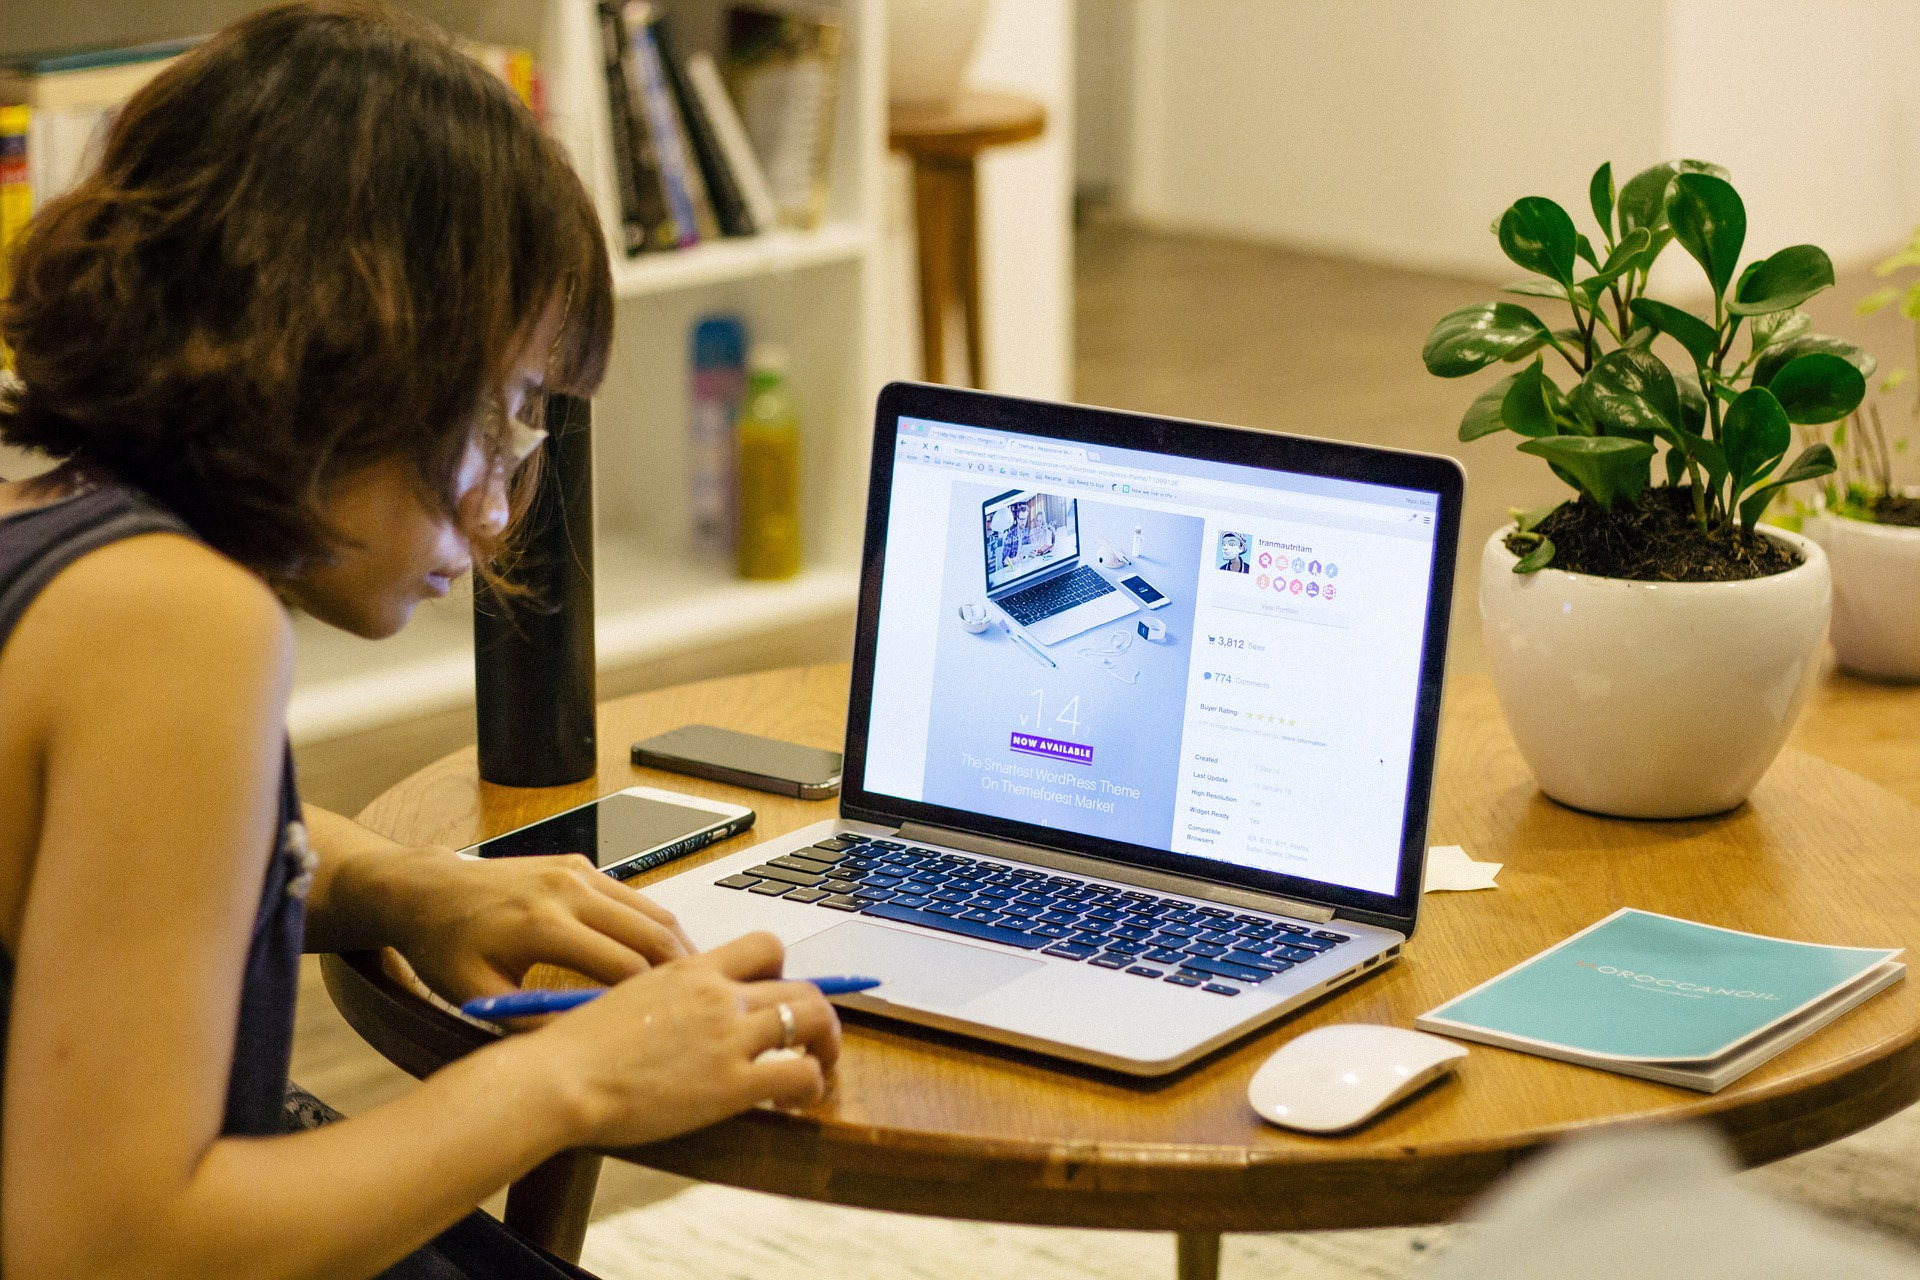 5 Ways to Design Your Home Office With Productivity in Mind